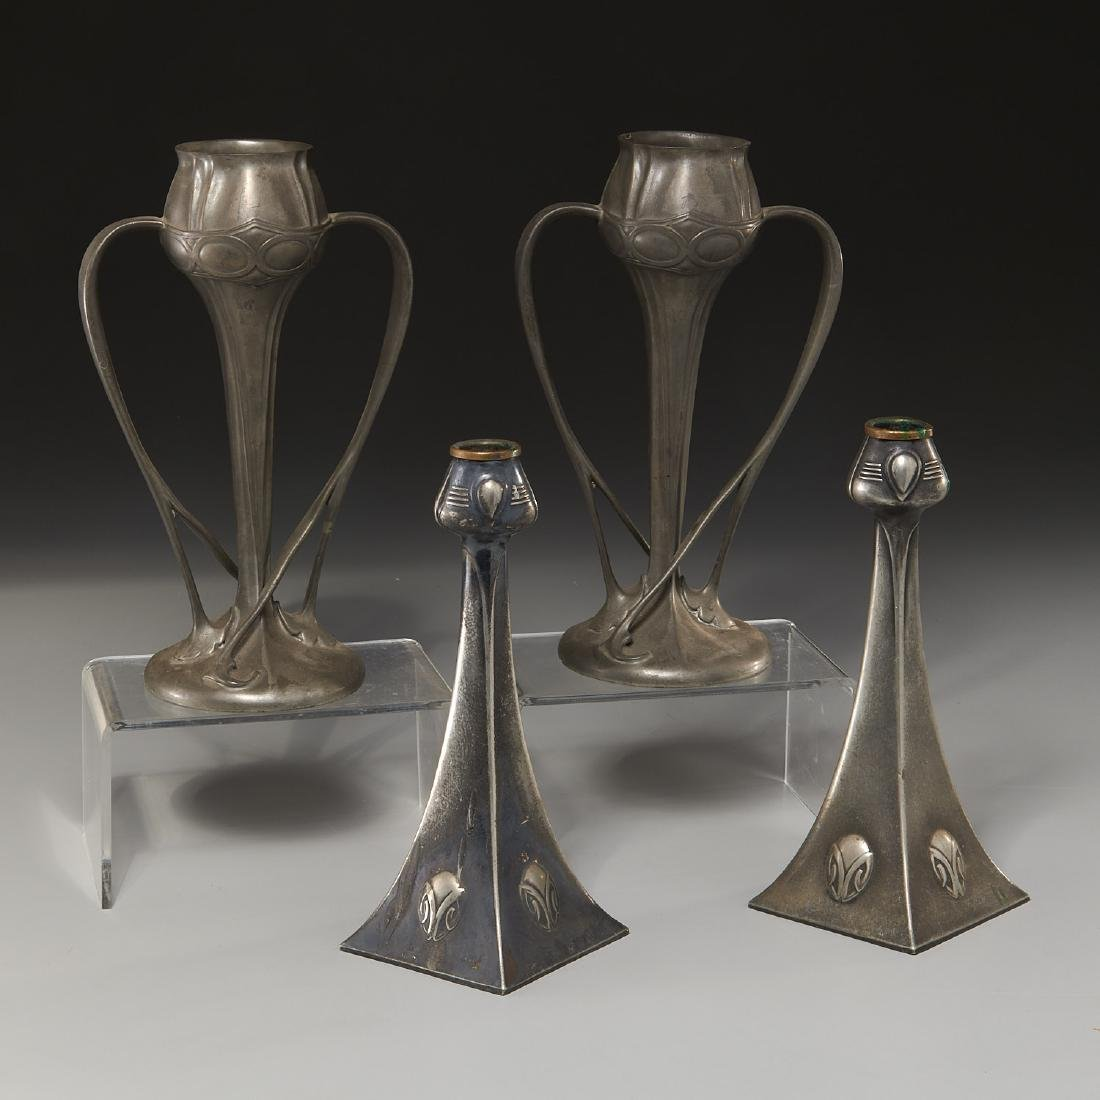 Archibald Knox and WMF Art Nouveau tablewares